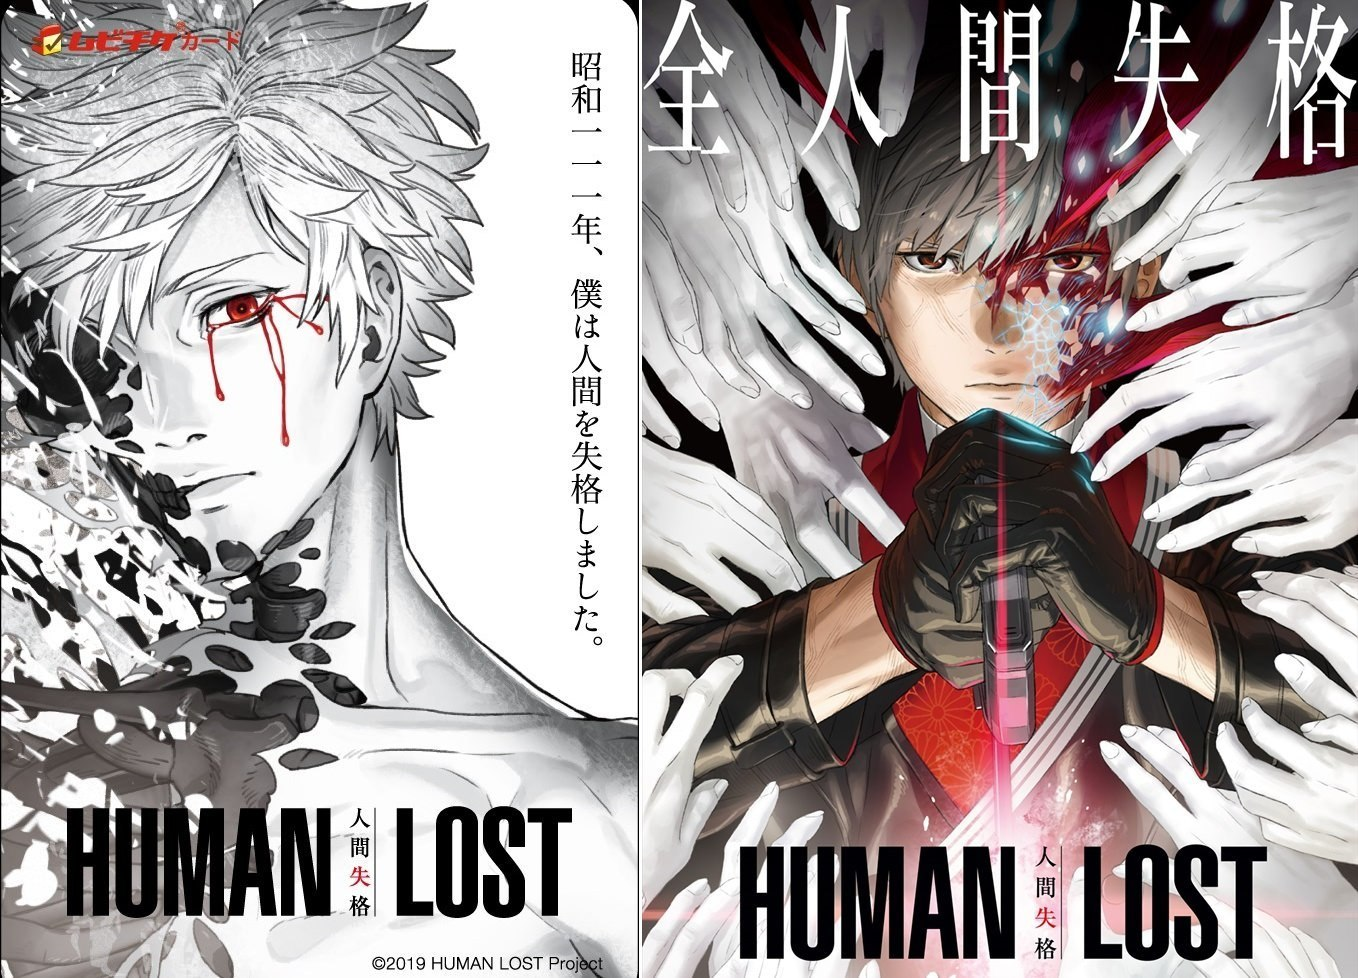 The Mv Of The Theme Song For The Dark Hero Action Movie Human Lost No Longer Human Is A Topic Japanese Anime Information